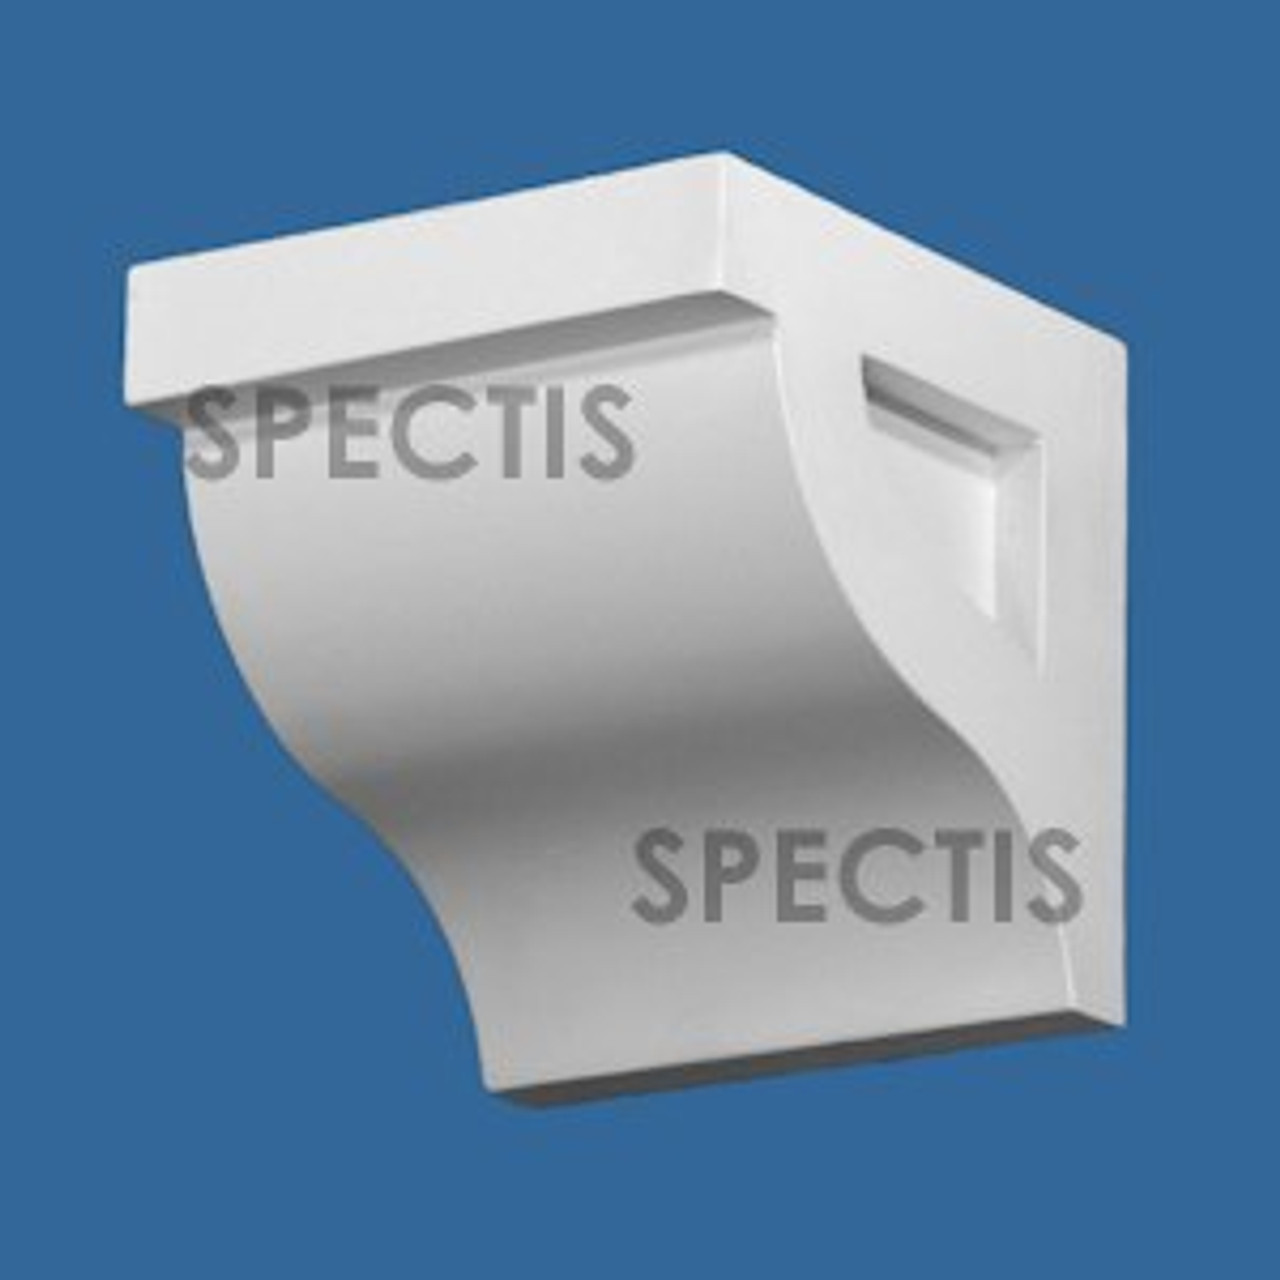 """BL3077 Spectis Eave Block or Bracket 12""""W x 5.88""""H x 5.88"""" Projection"""